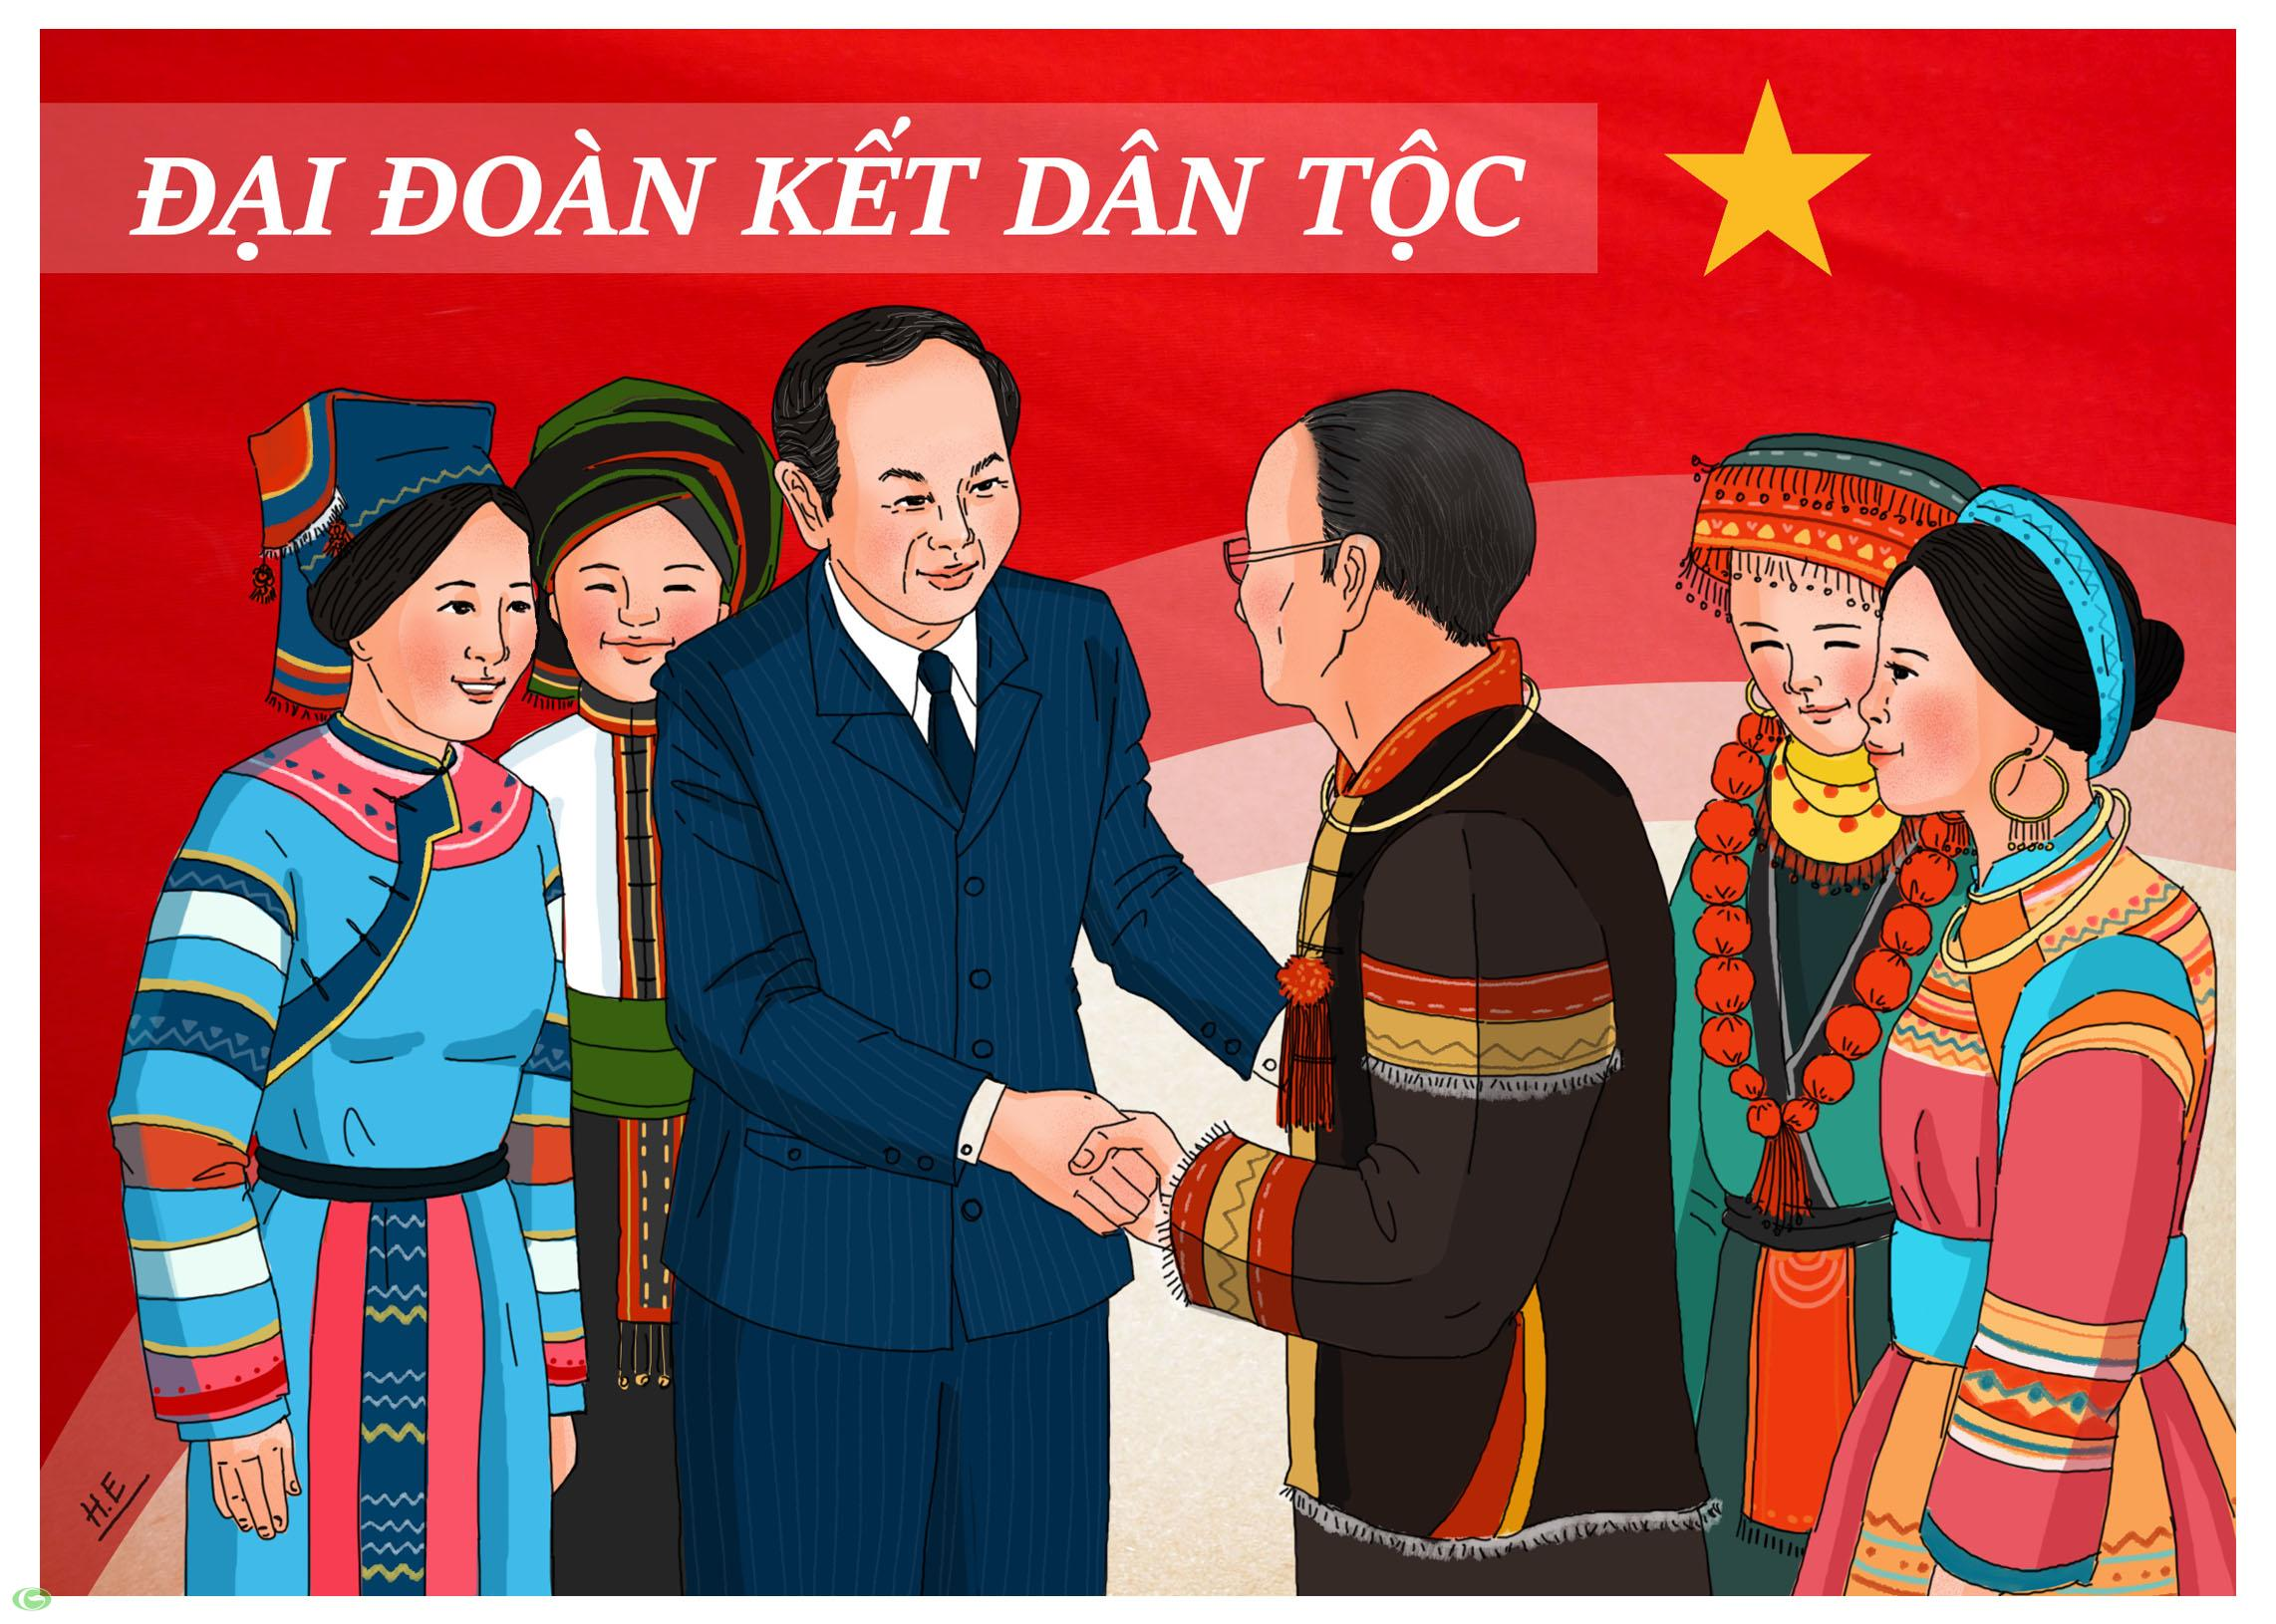 Vietnam Fatherland Front promotes national unity